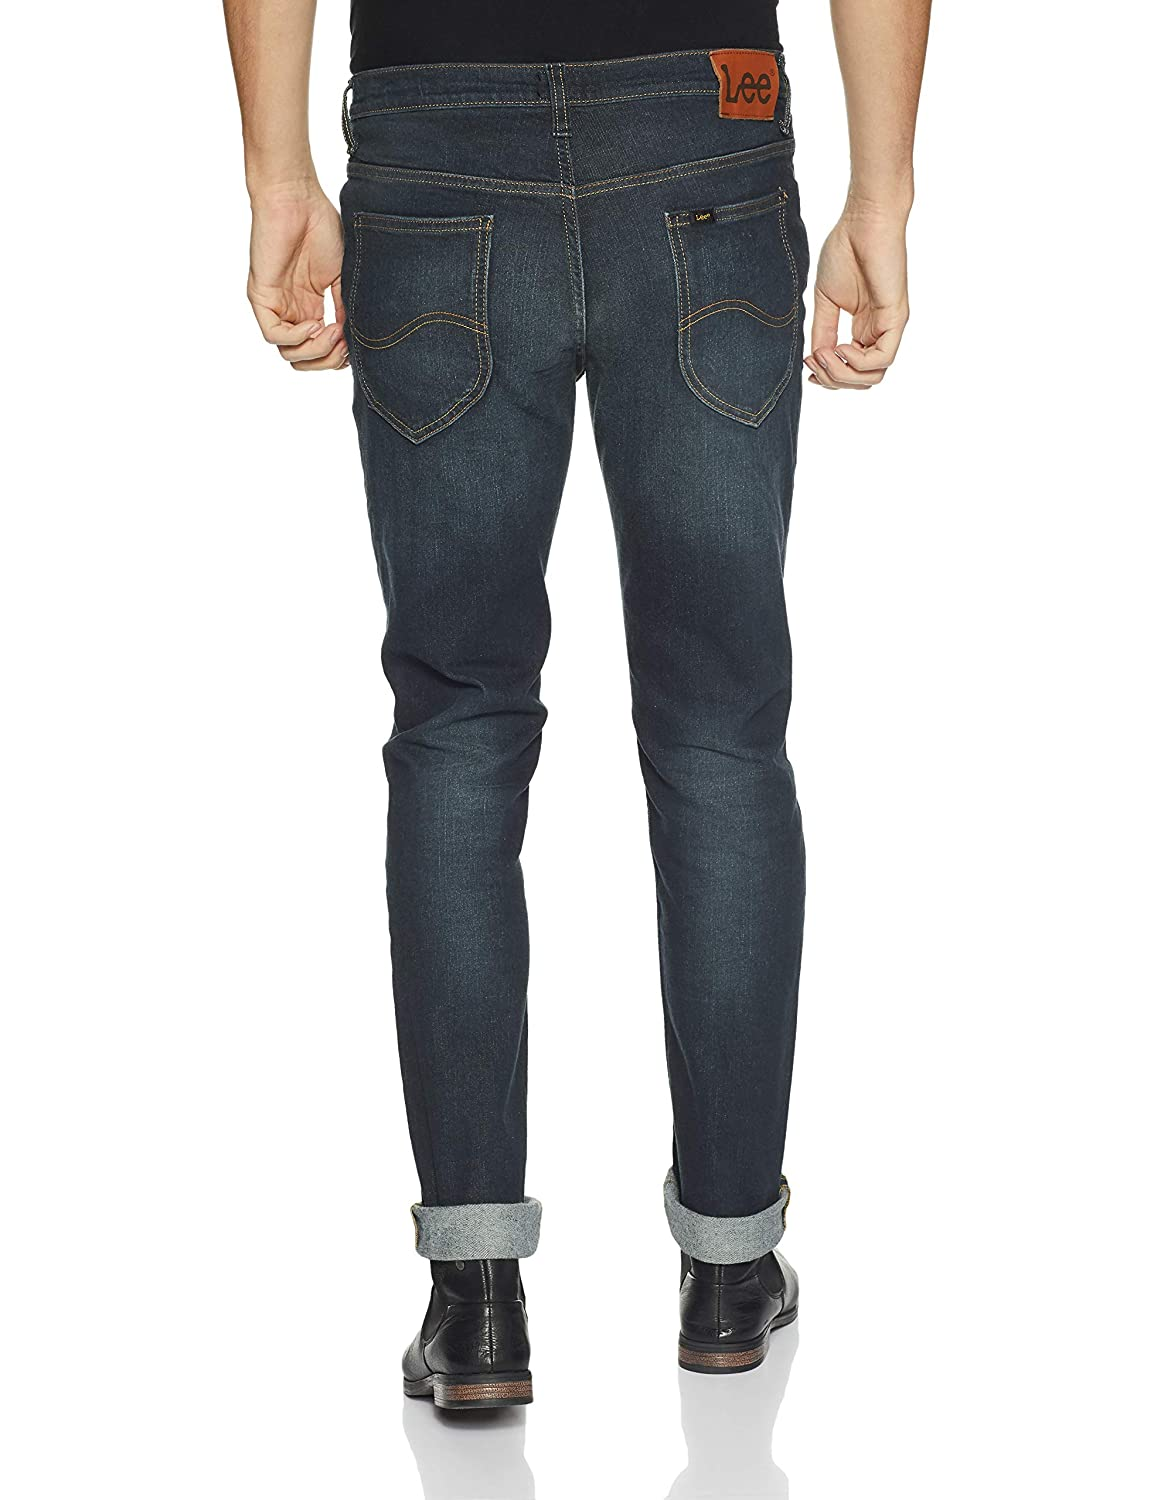 1da2fa7d Lee Men's (Bruce) Skinny Fit Mid Rise Jeans: Amazon.in: Clothing &  Accessories